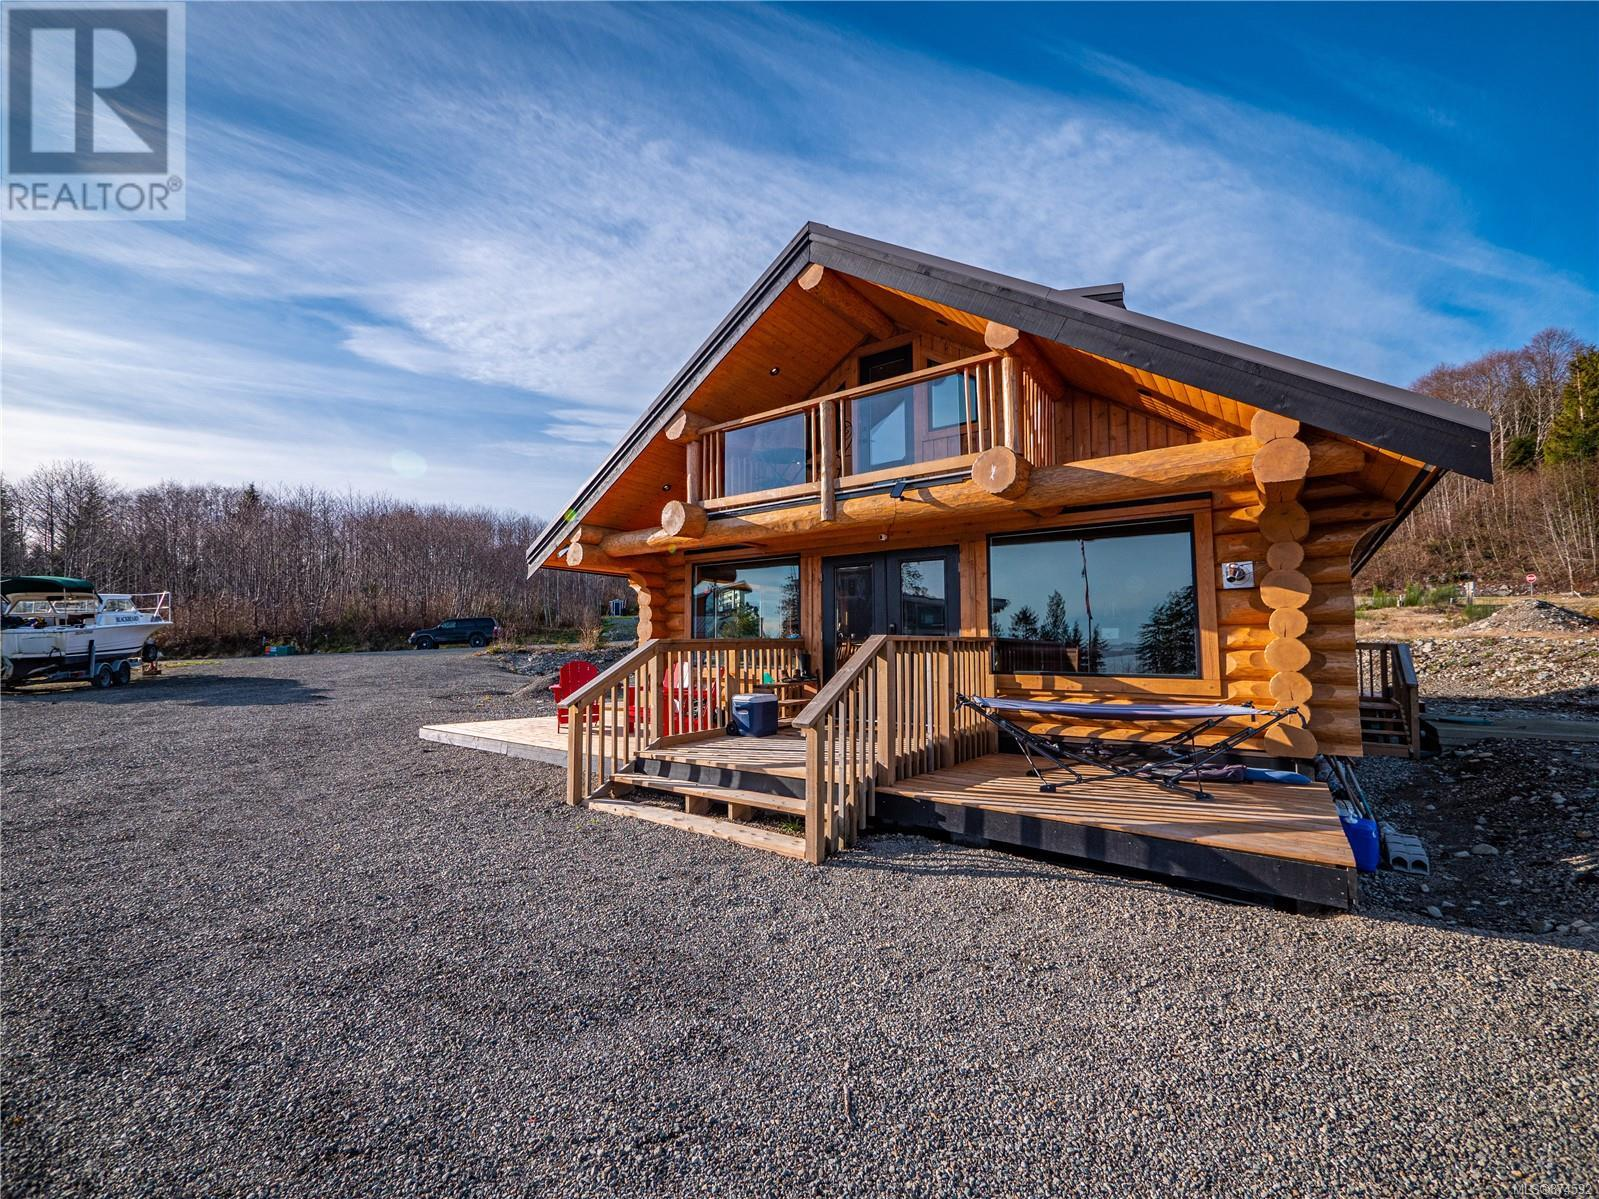 MLS® #874592 - Ucluelet House For sale Image #9